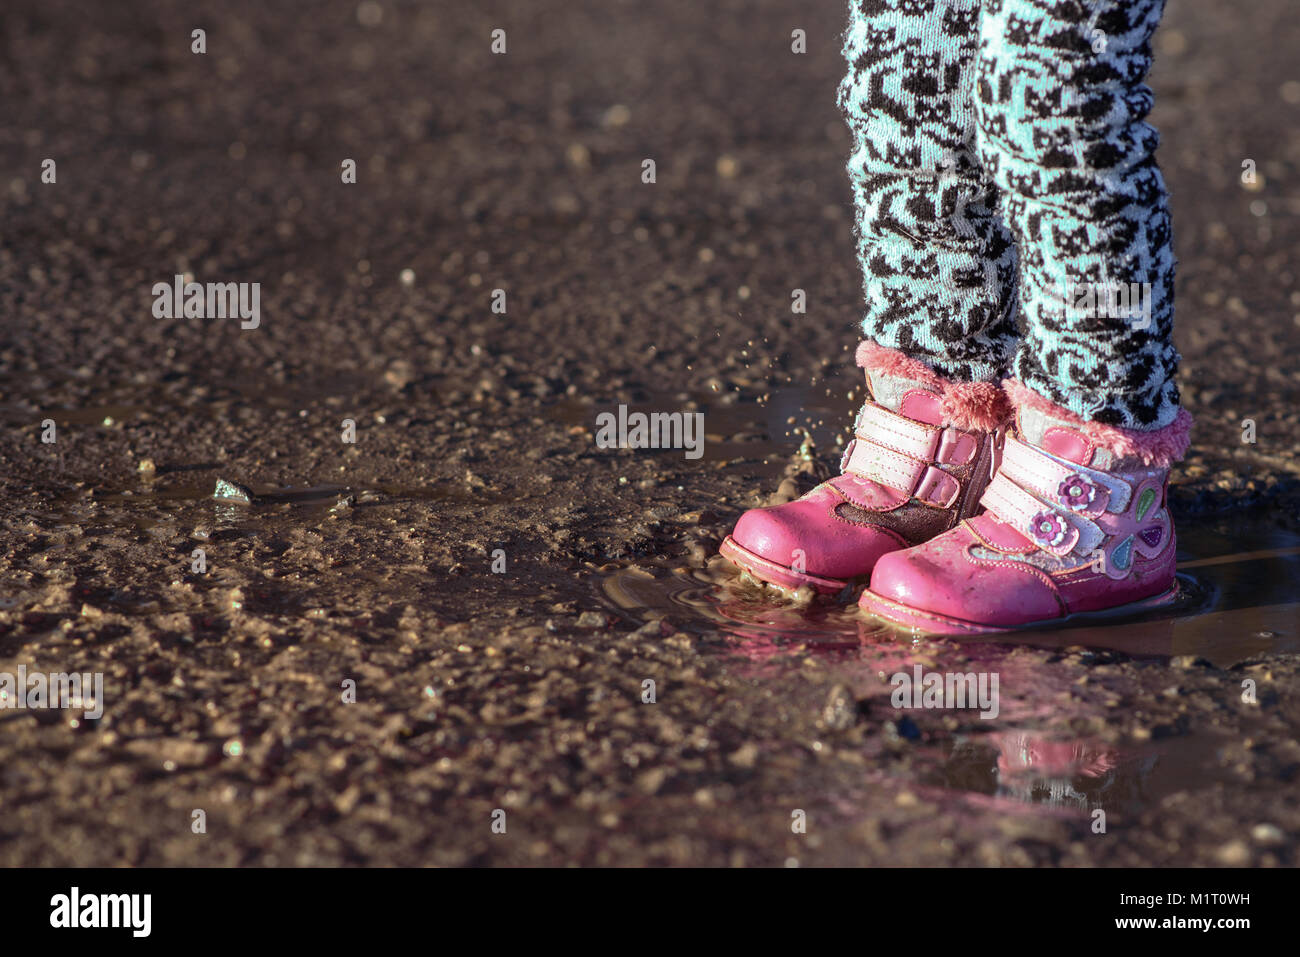 dirty boots and shoes stockfotos dirty boots and shoes bilder alamy. Black Bedroom Furniture Sets. Home Design Ideas